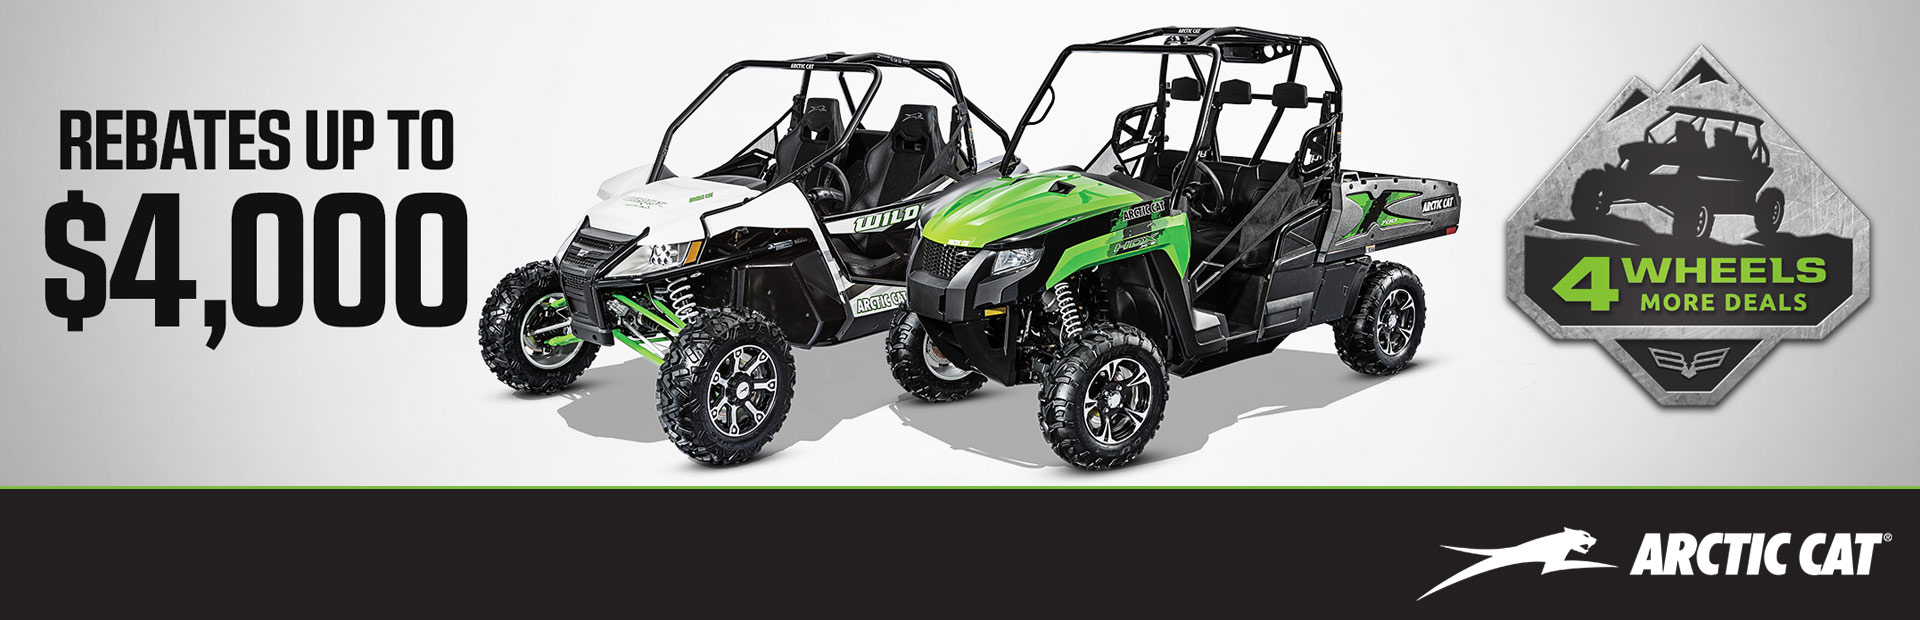 Arctic Cat: 4 Wheels More Deals Sales Event - Side by Sides